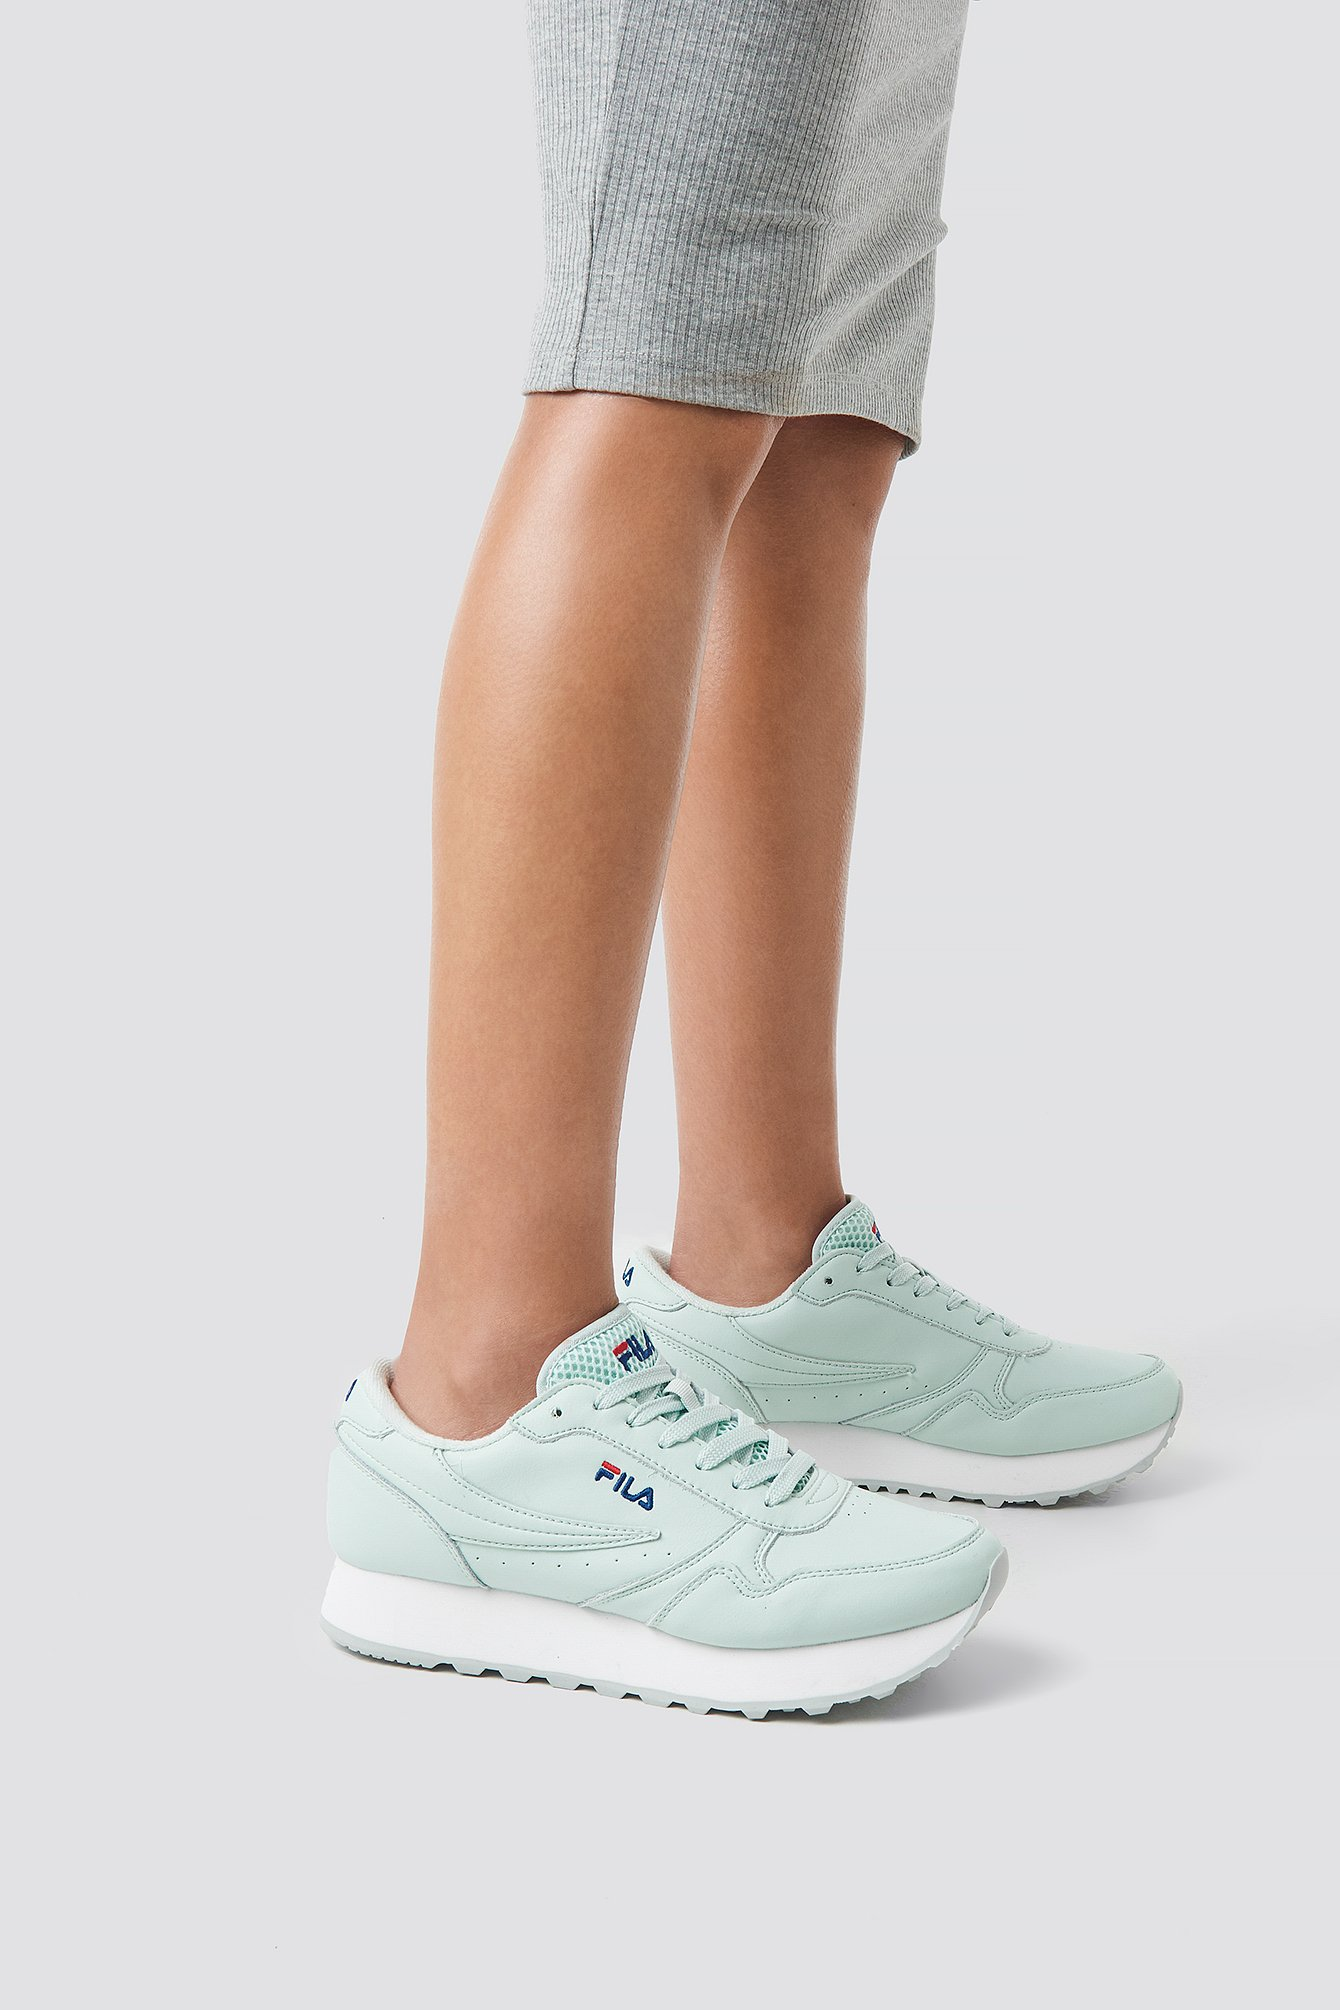 fila -  Orbit Zeppa L Wmn - Green